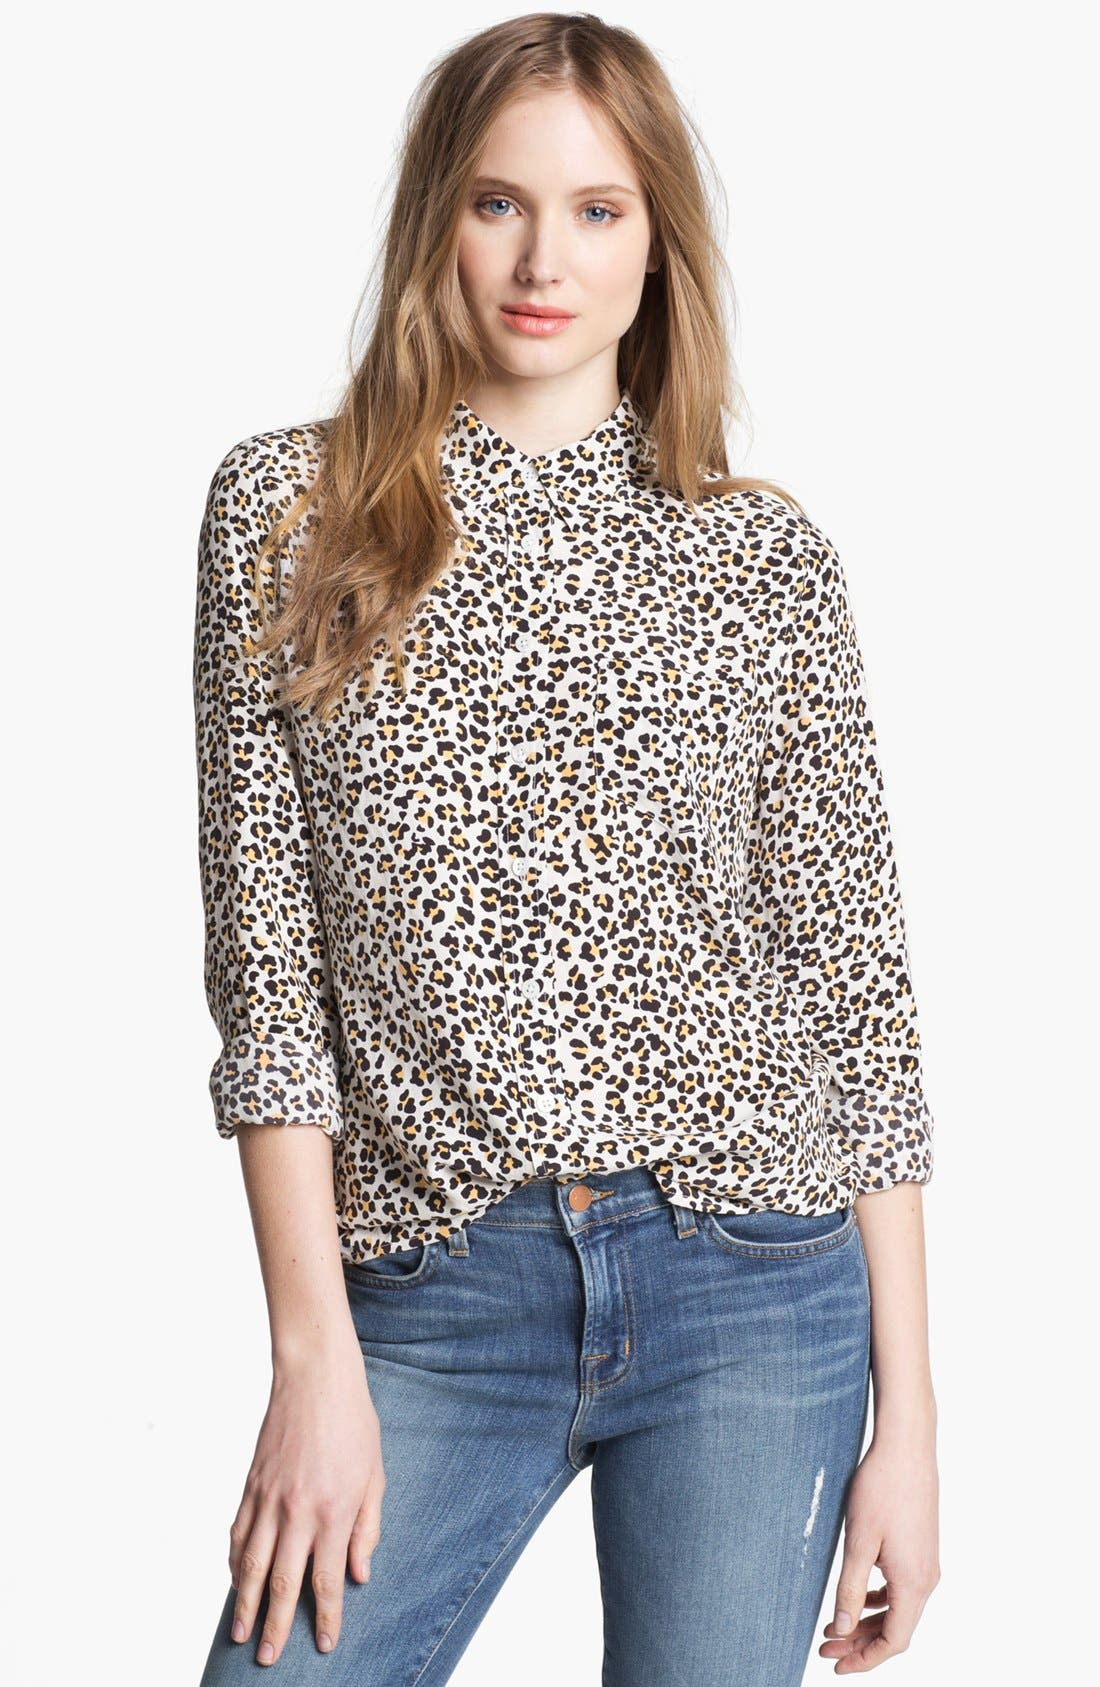 Alternate Image 1 Selected - Equipment 'Brett' Print Silk Top